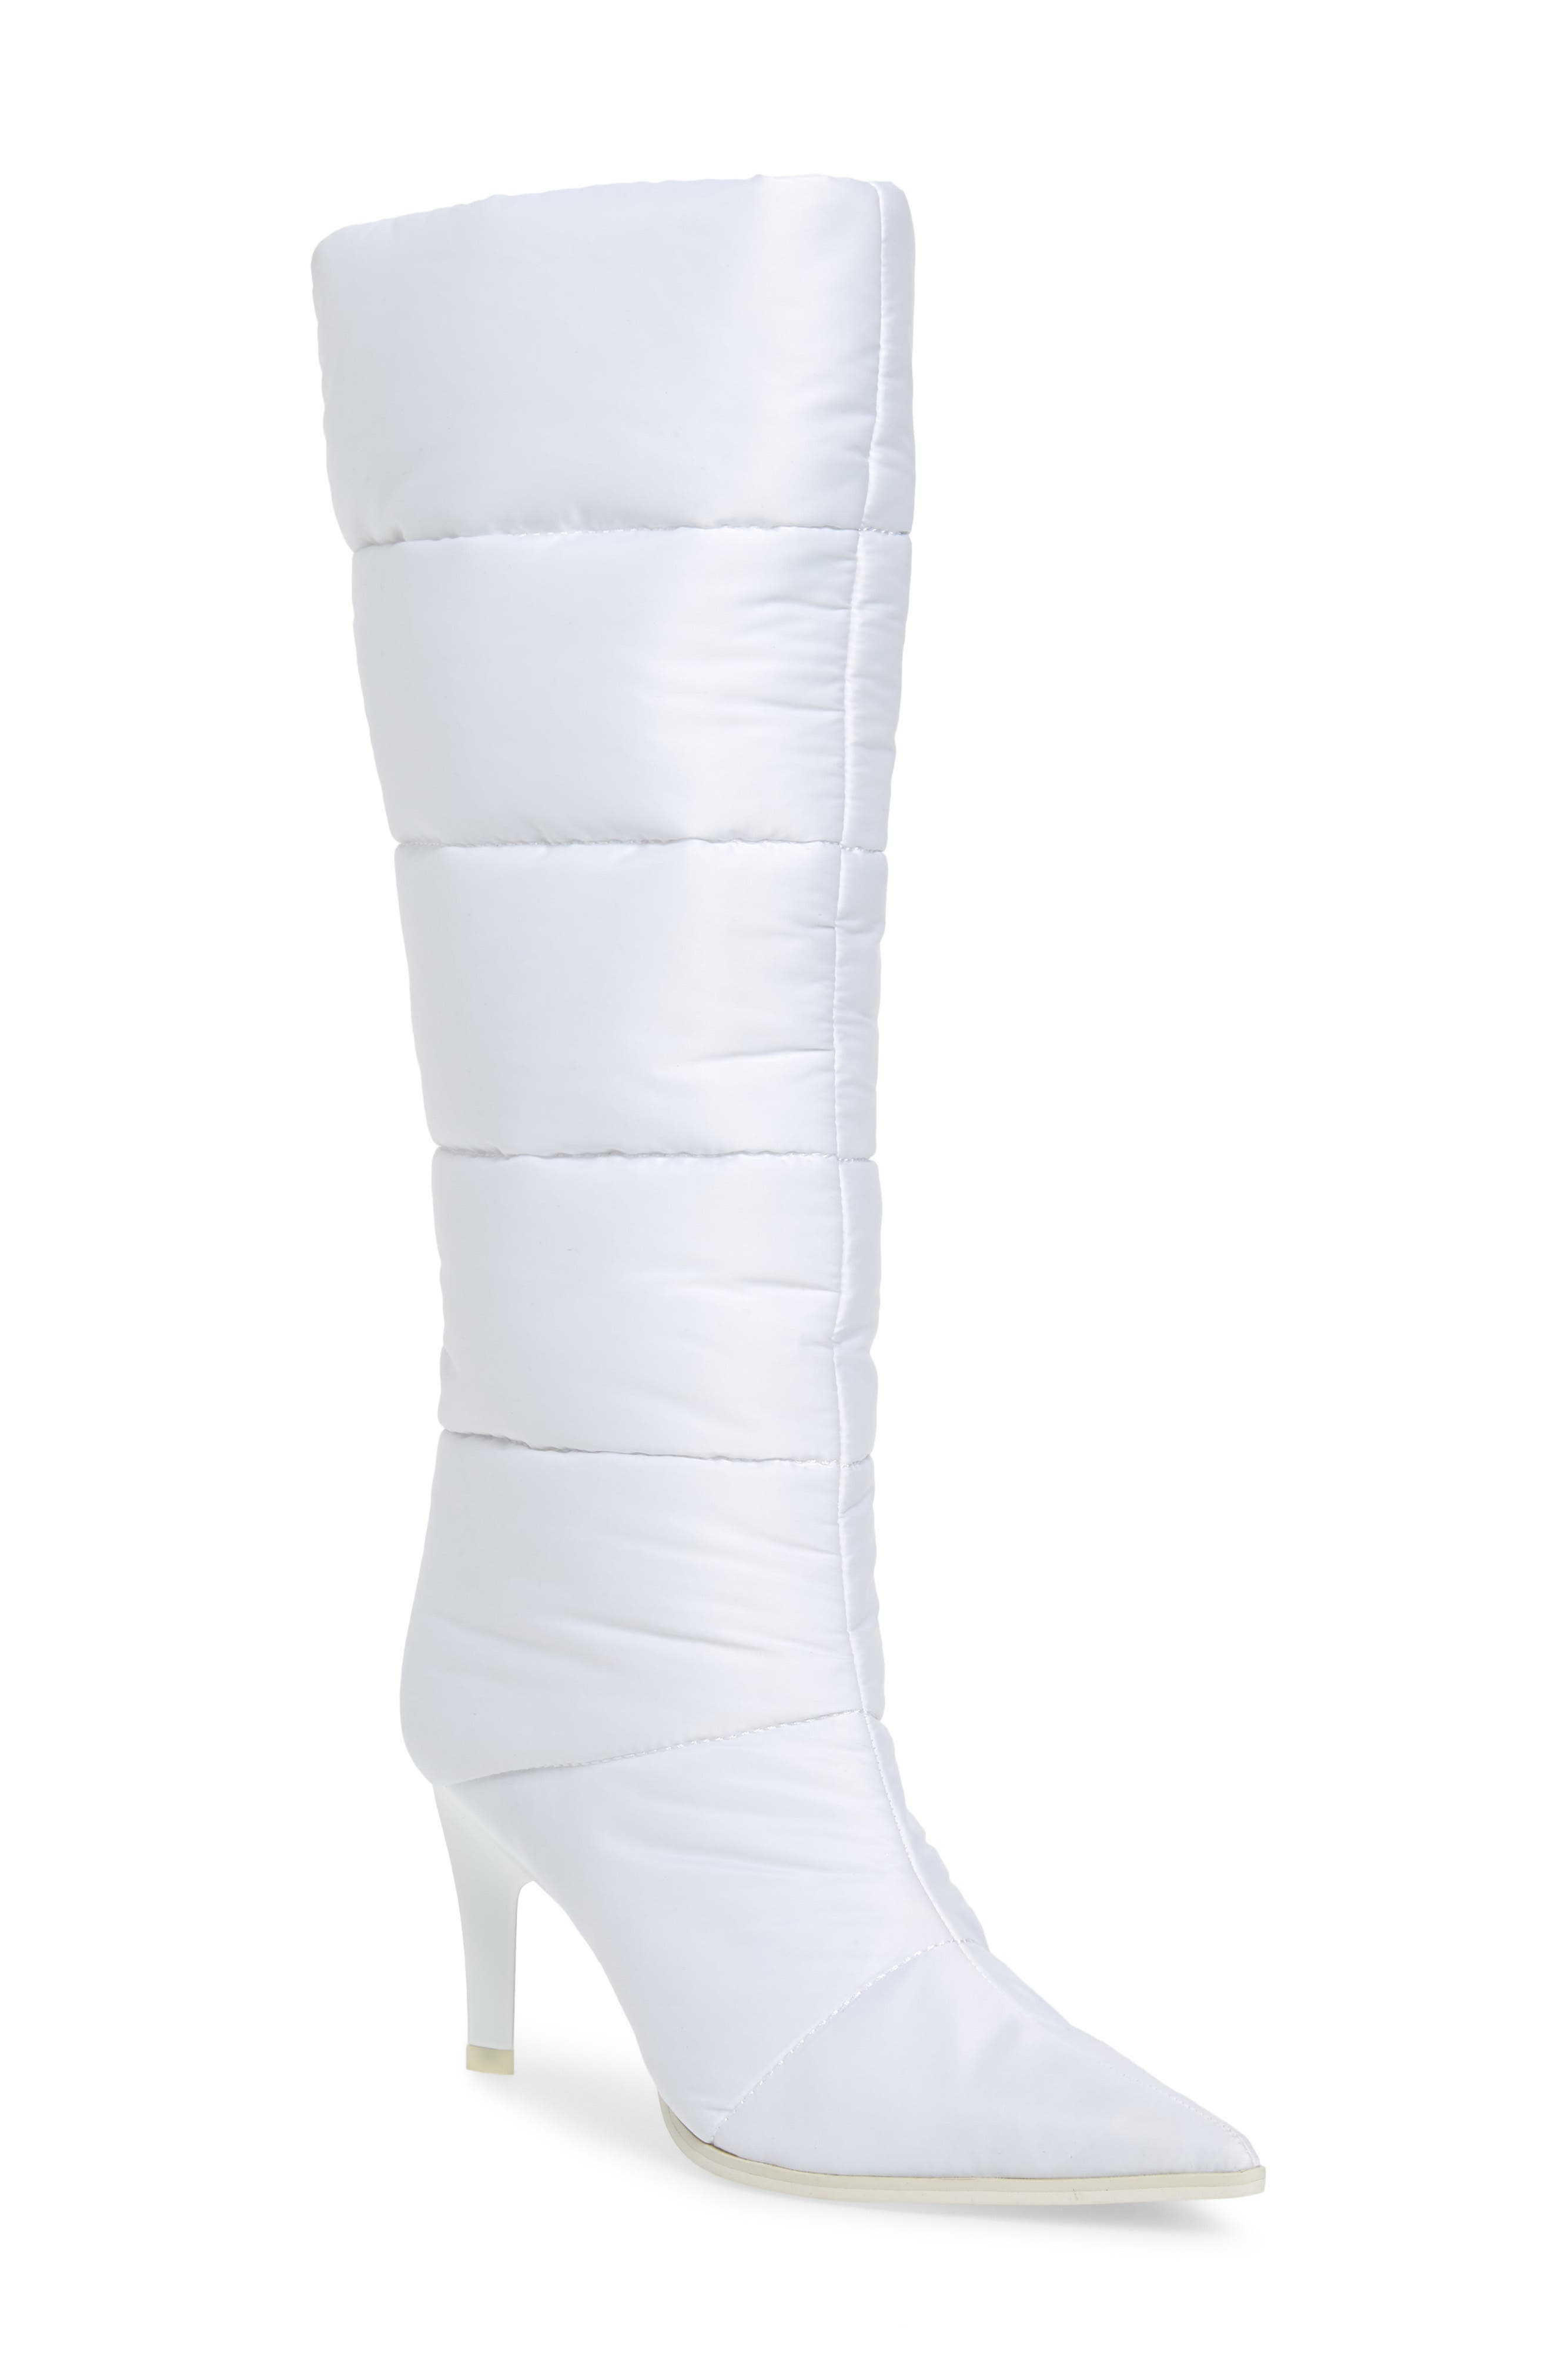 Apris Knee High Puffer Boot,                         Main,                         color, WHITE FABRIC